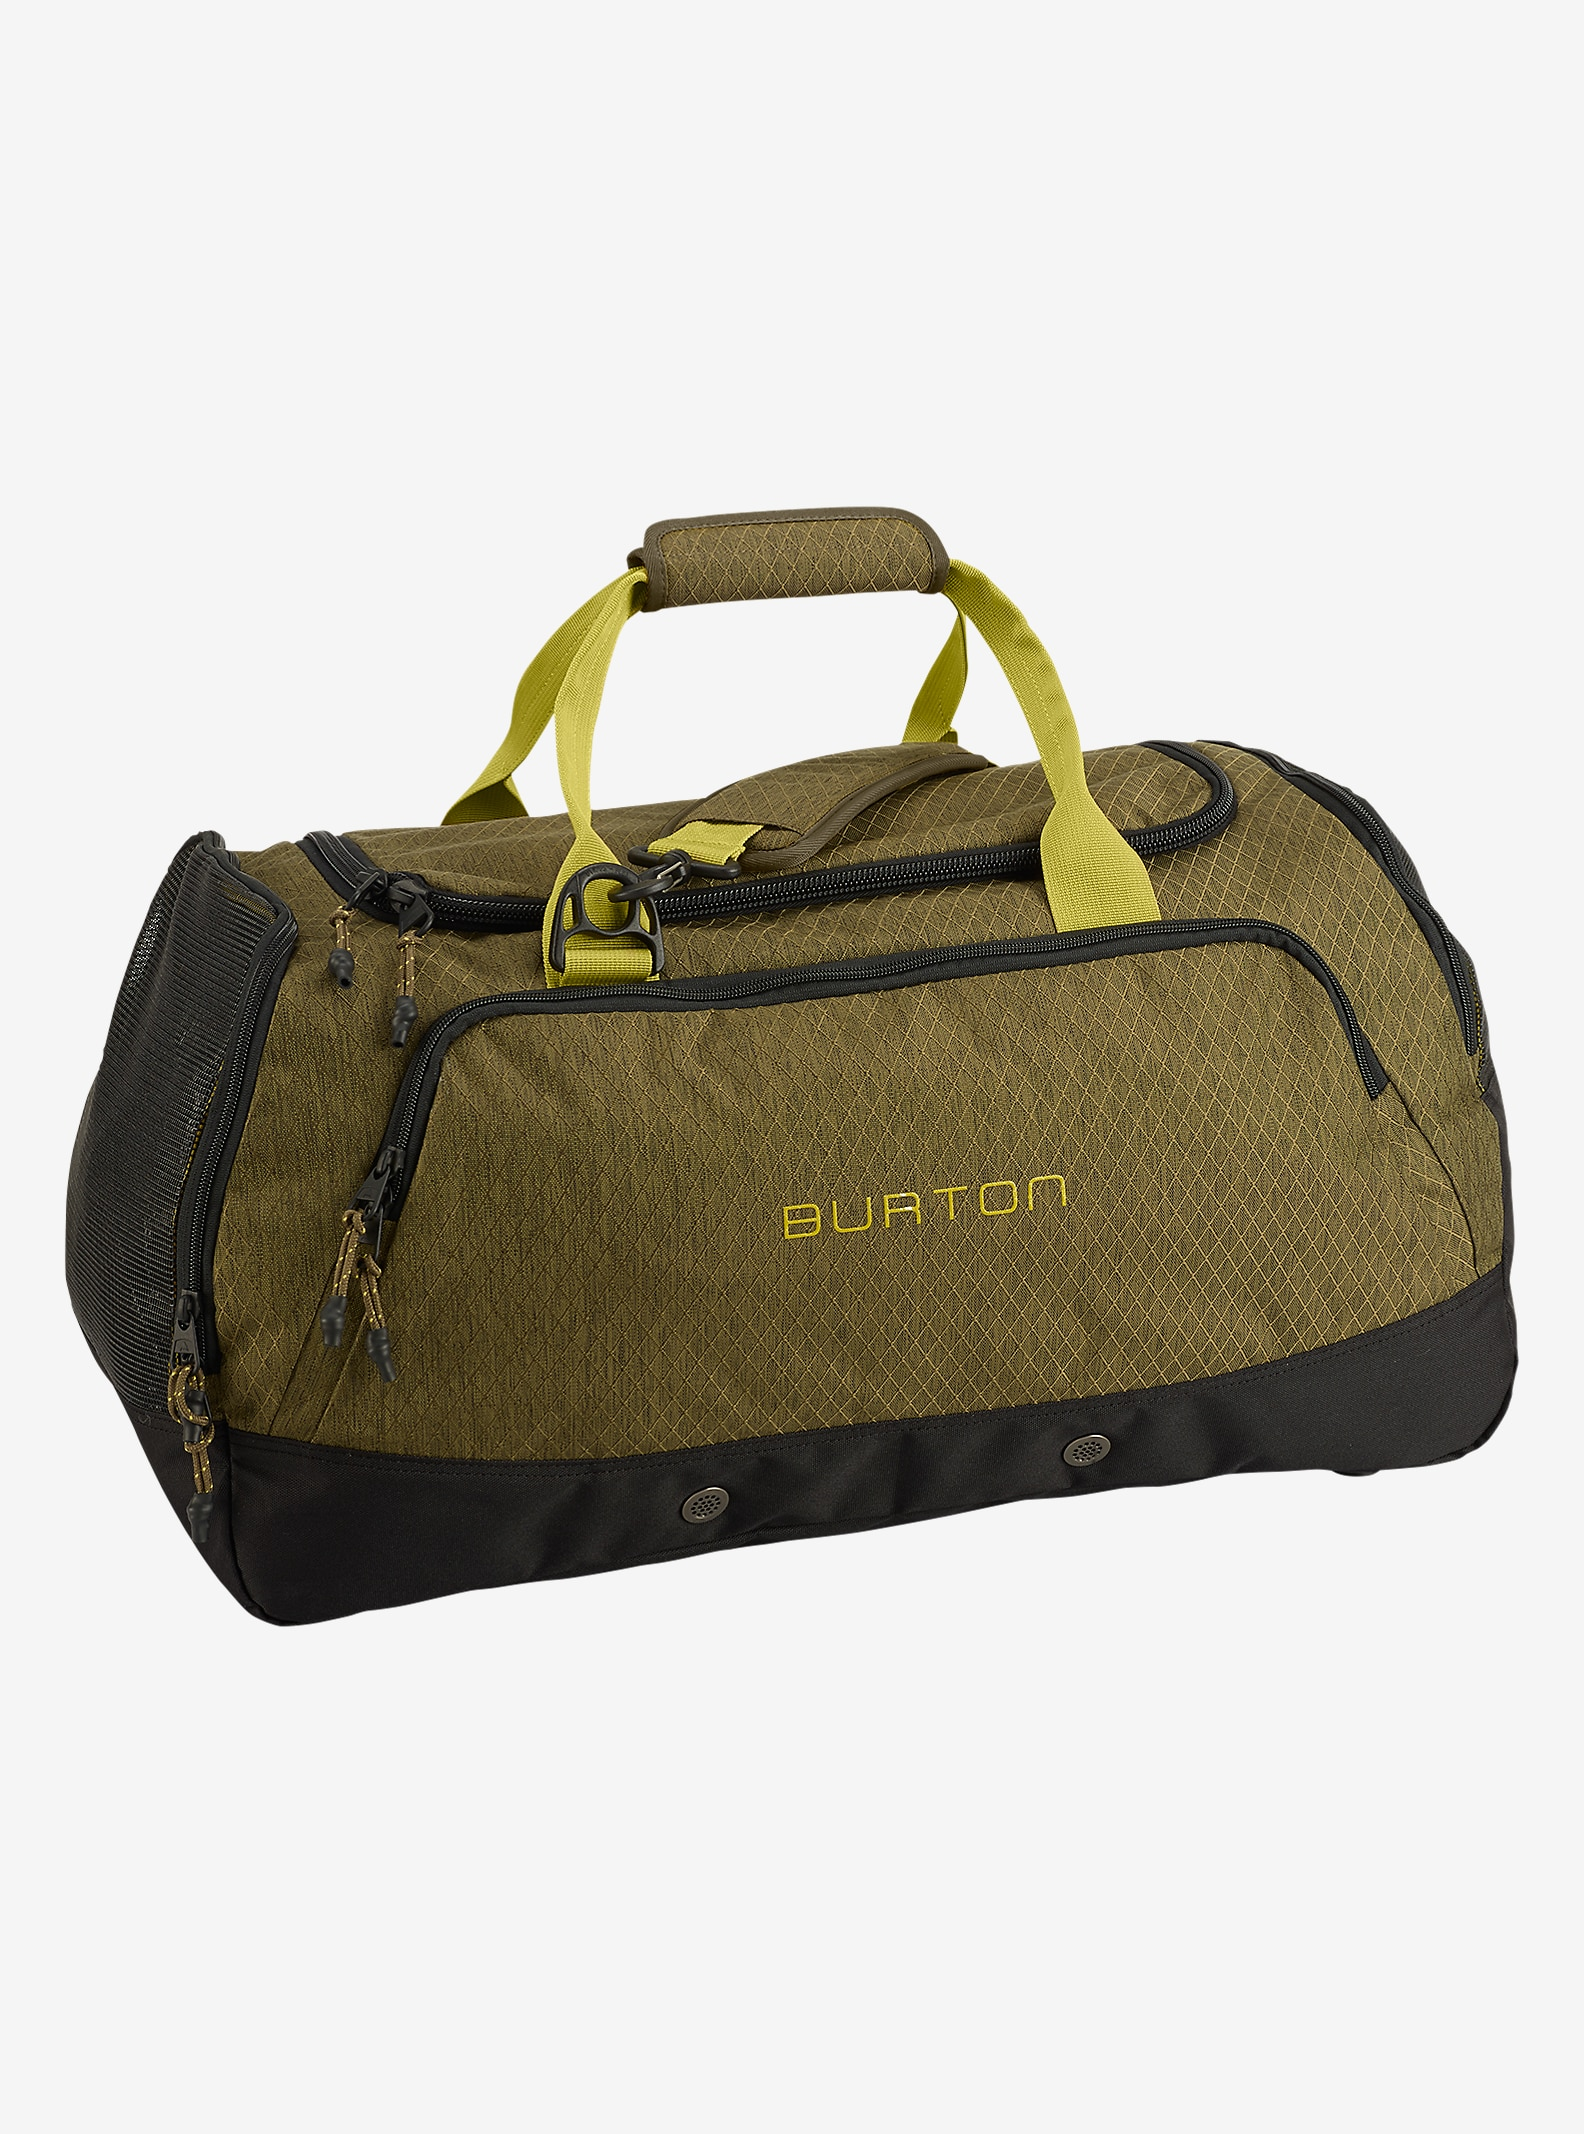 Burton Boothaus Tasche 2.0 L angezeigt in Jungle Heather Diamond Ripstop